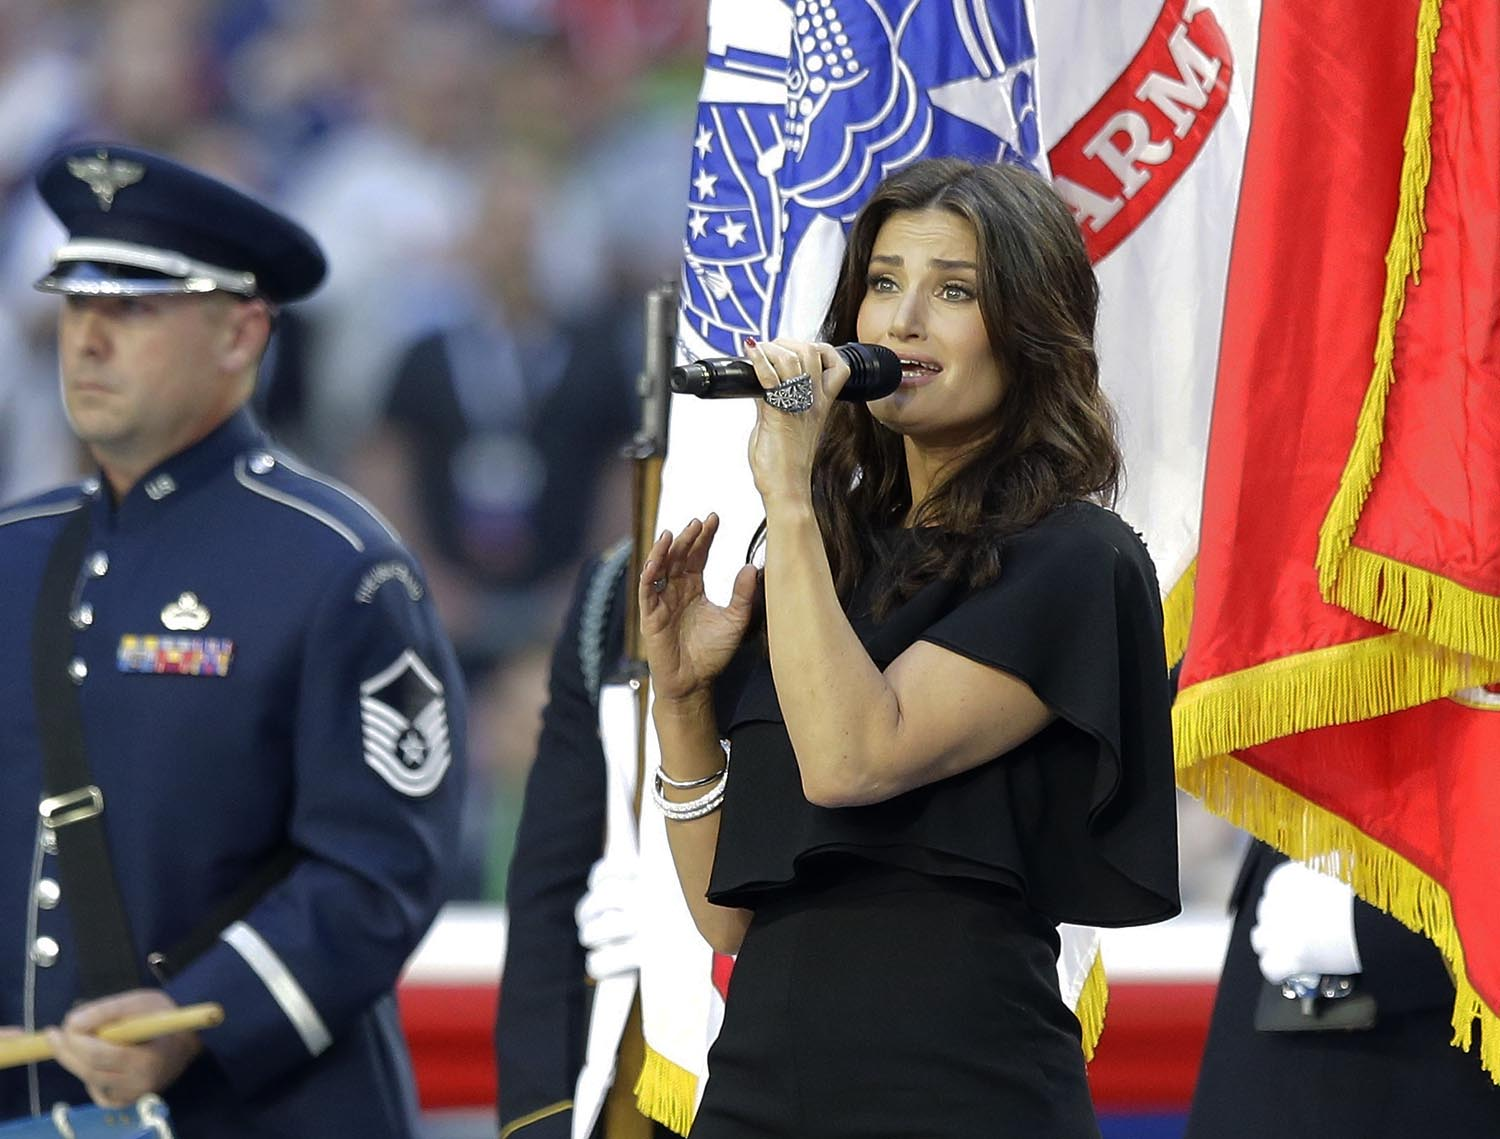 <div class='meta'><div class='origin-logo' data-origin='AP'></div><span class='caption-text' data-credit='AP Photo/Michael Conroy'>2015: Idina Menzel sings the national anthem before the NFL Super Bowl XLIX football game between the Seattle Seahawks and the New England Patriots on Feb. 1, 2015.</span></div>